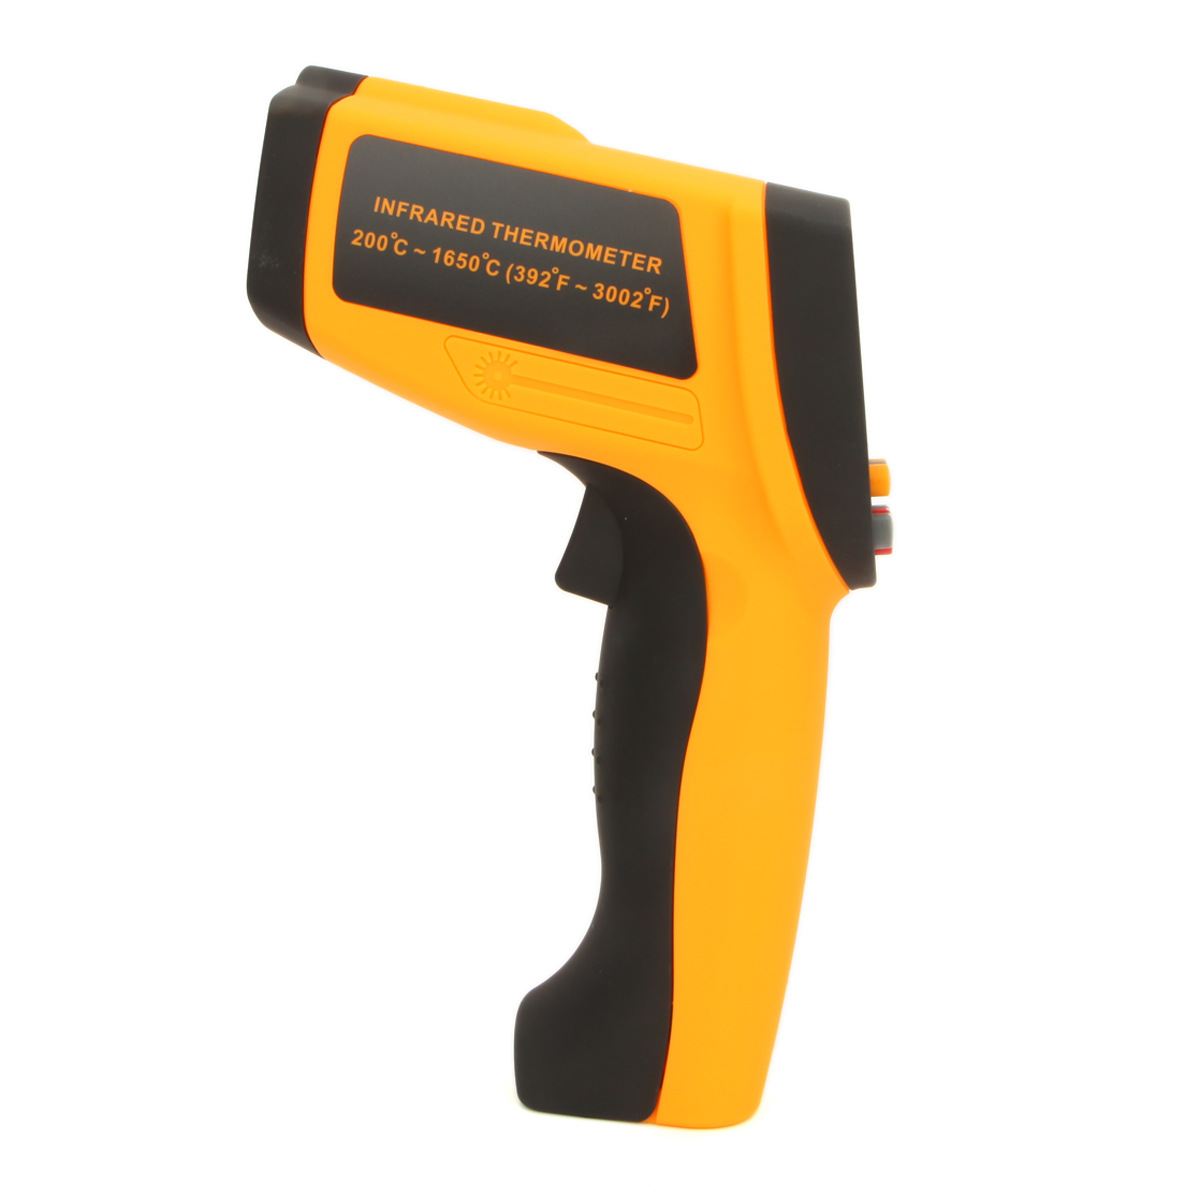 GM1650 LCD Non-Contact Digital 392~3002F Pyrometer 0.1~1EM Celsius Laser IR Infrared Thermometer 200-1650 C цена 2016